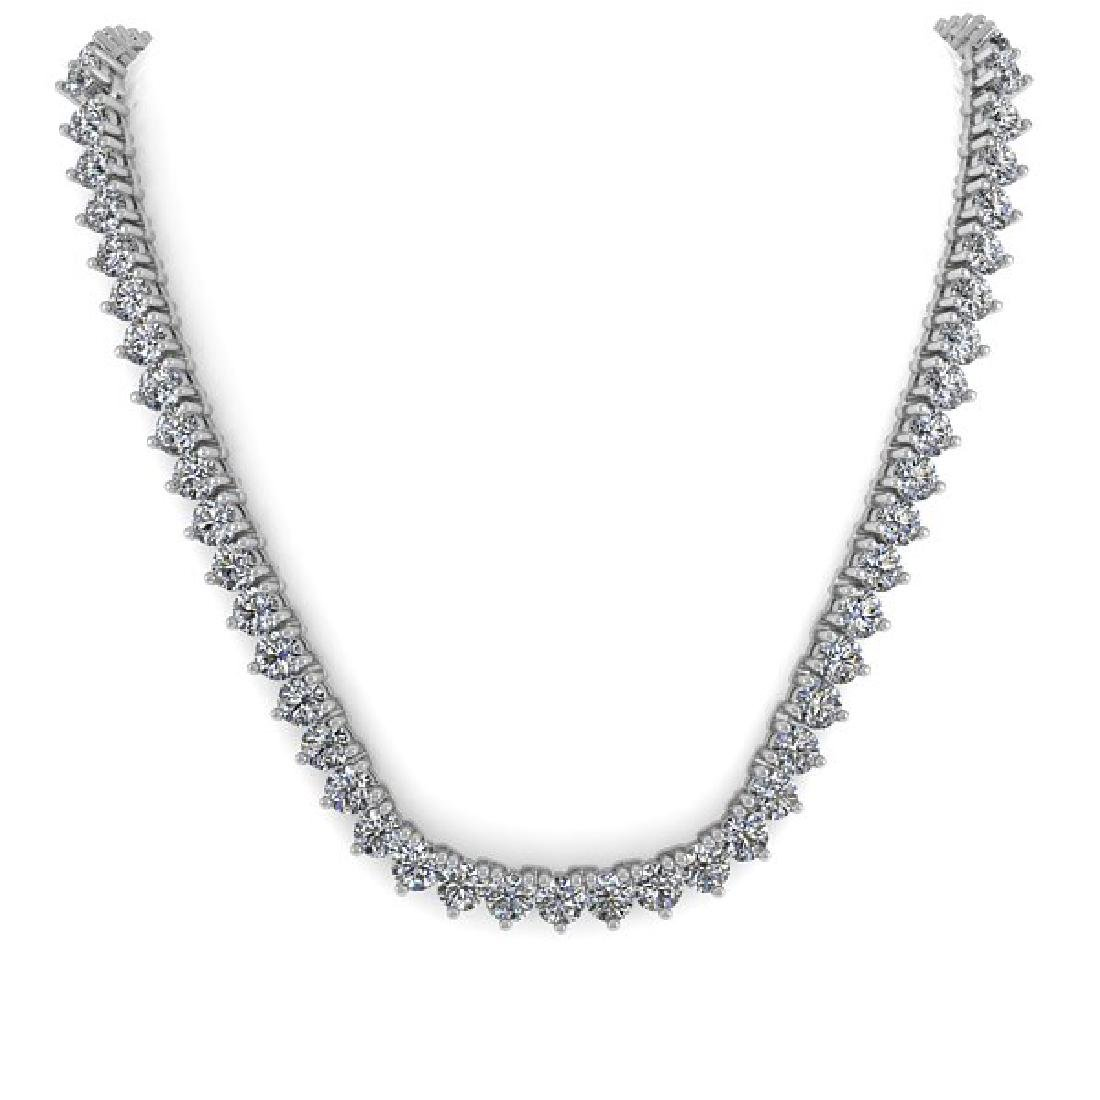 53 CTW Solitaire SI Diamond Necklace 14K White Gold - 2